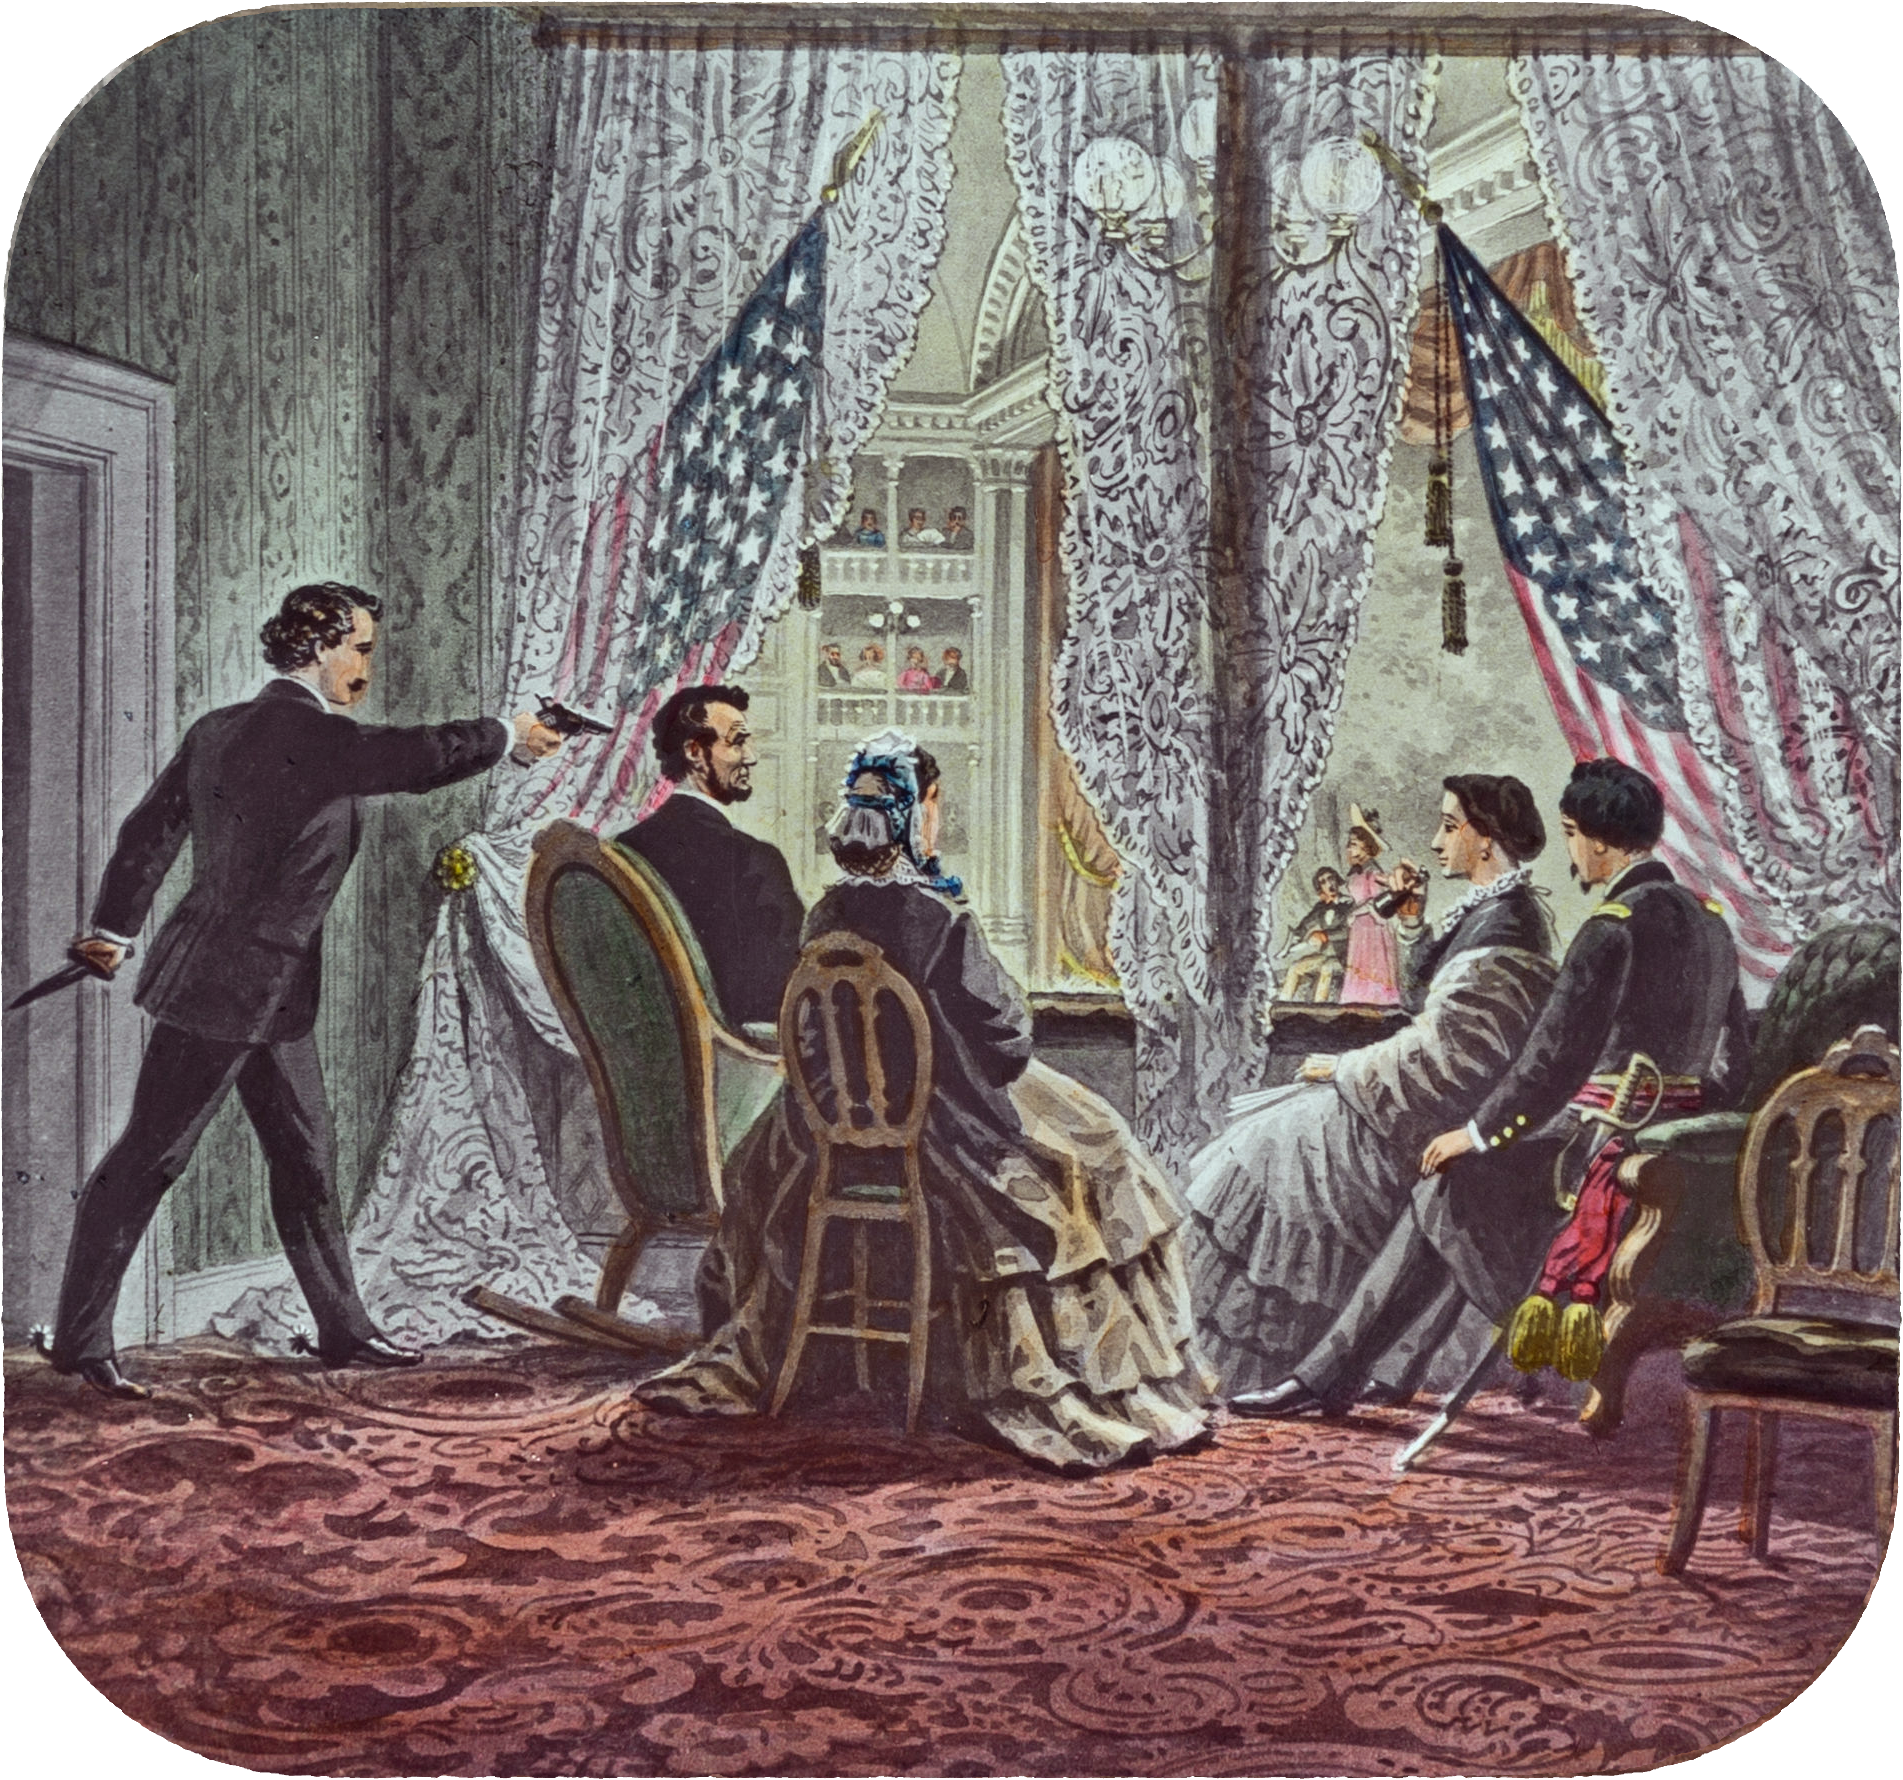 the assassination of president lincoln essay Essay on the assassination of abraham lincoln based on a television documentary, lincoln, a&e networks provides readers with an in-depth summary of the assassination of abraham lincoln this online article goes along with the documentary to give details as to what happened the night of lincoln's assassination.